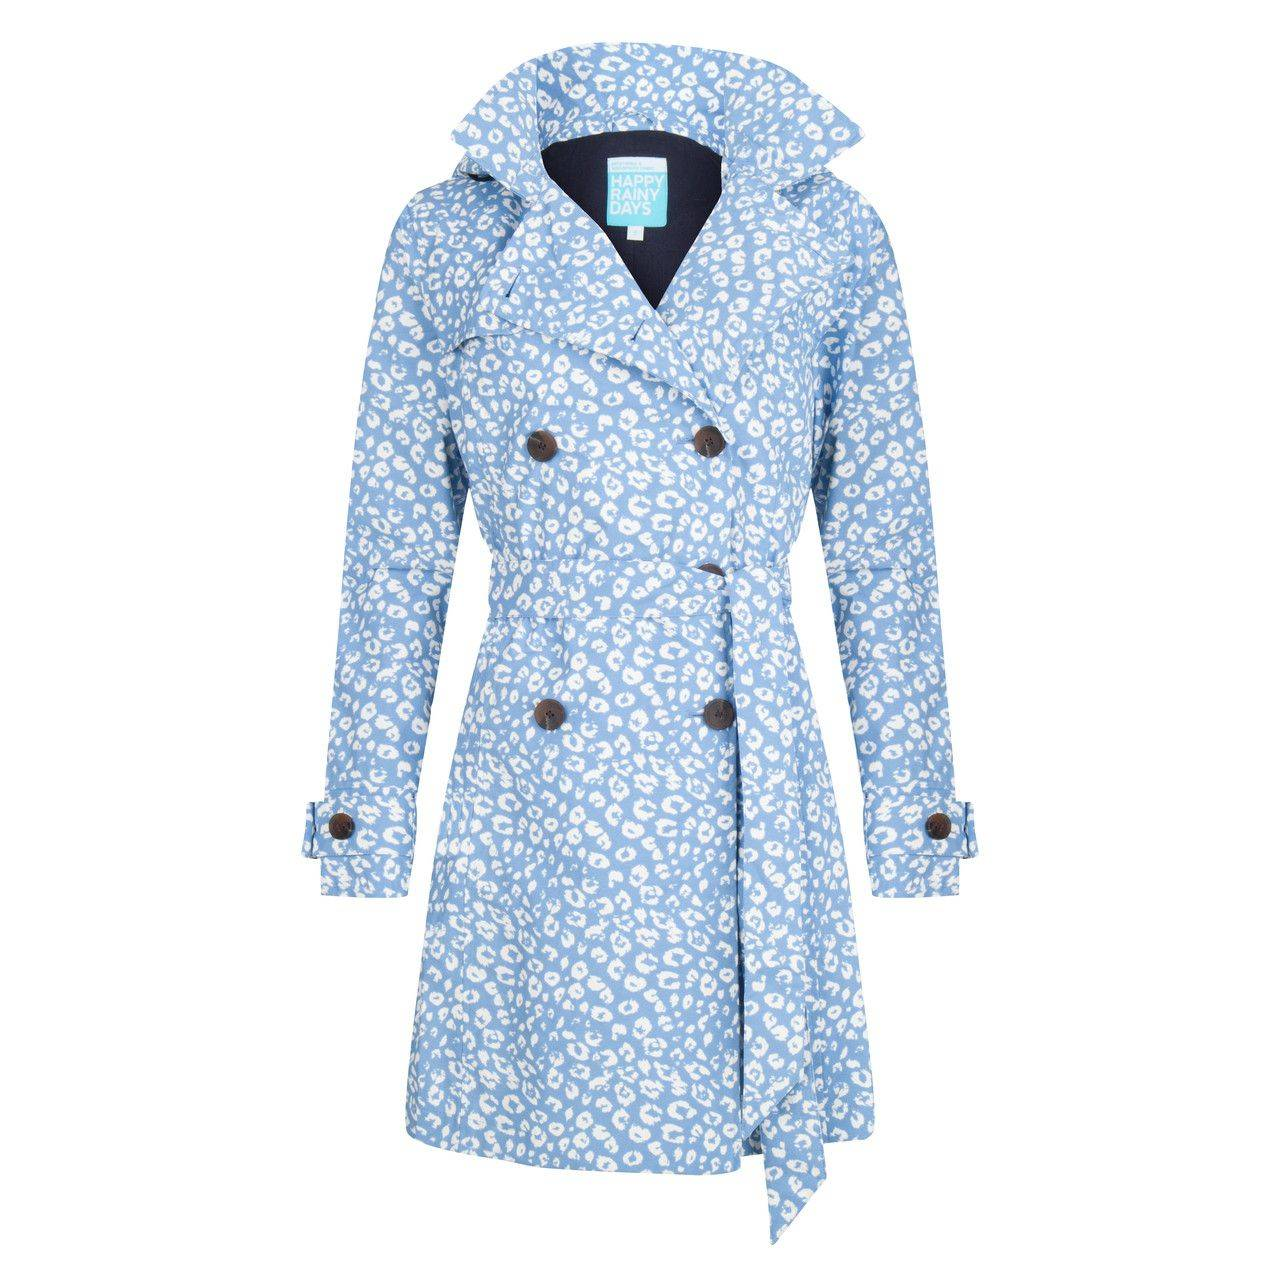 Happy Rainy Days Trench Coat, Light Blue/White, Color: Light Blue/White, Size: S